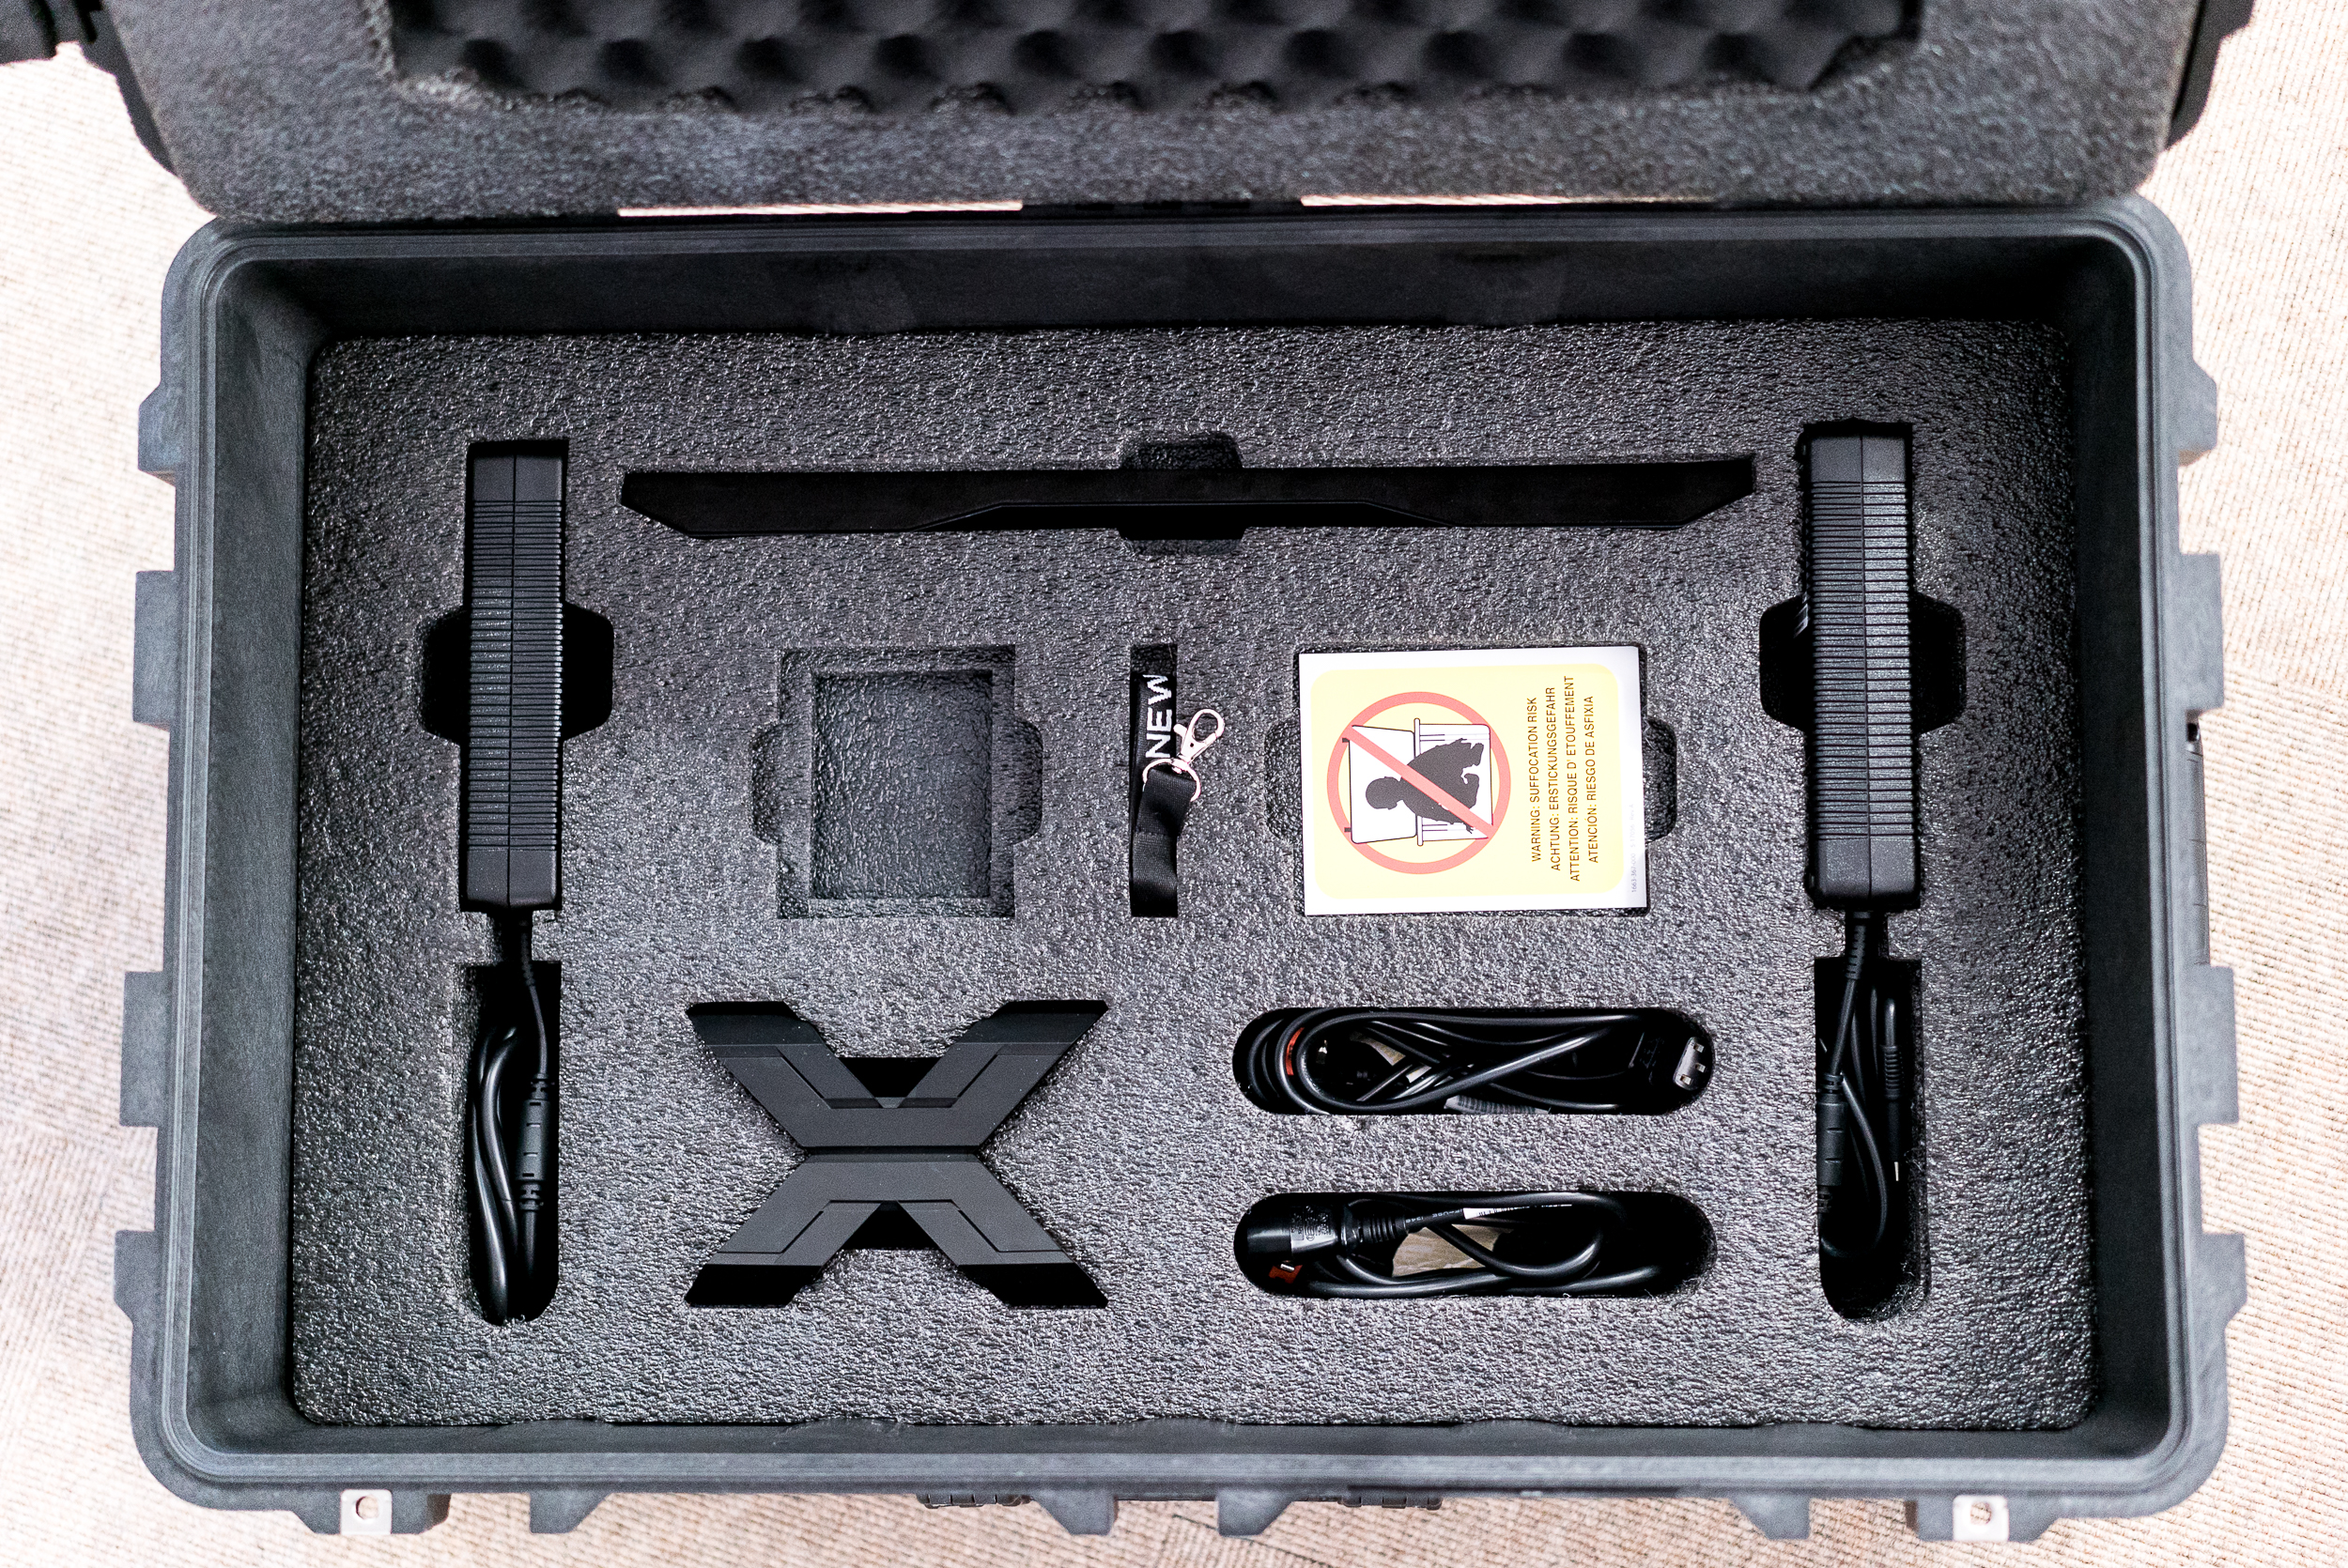 The 21X comes inside a huge flight case housing all its accessories.